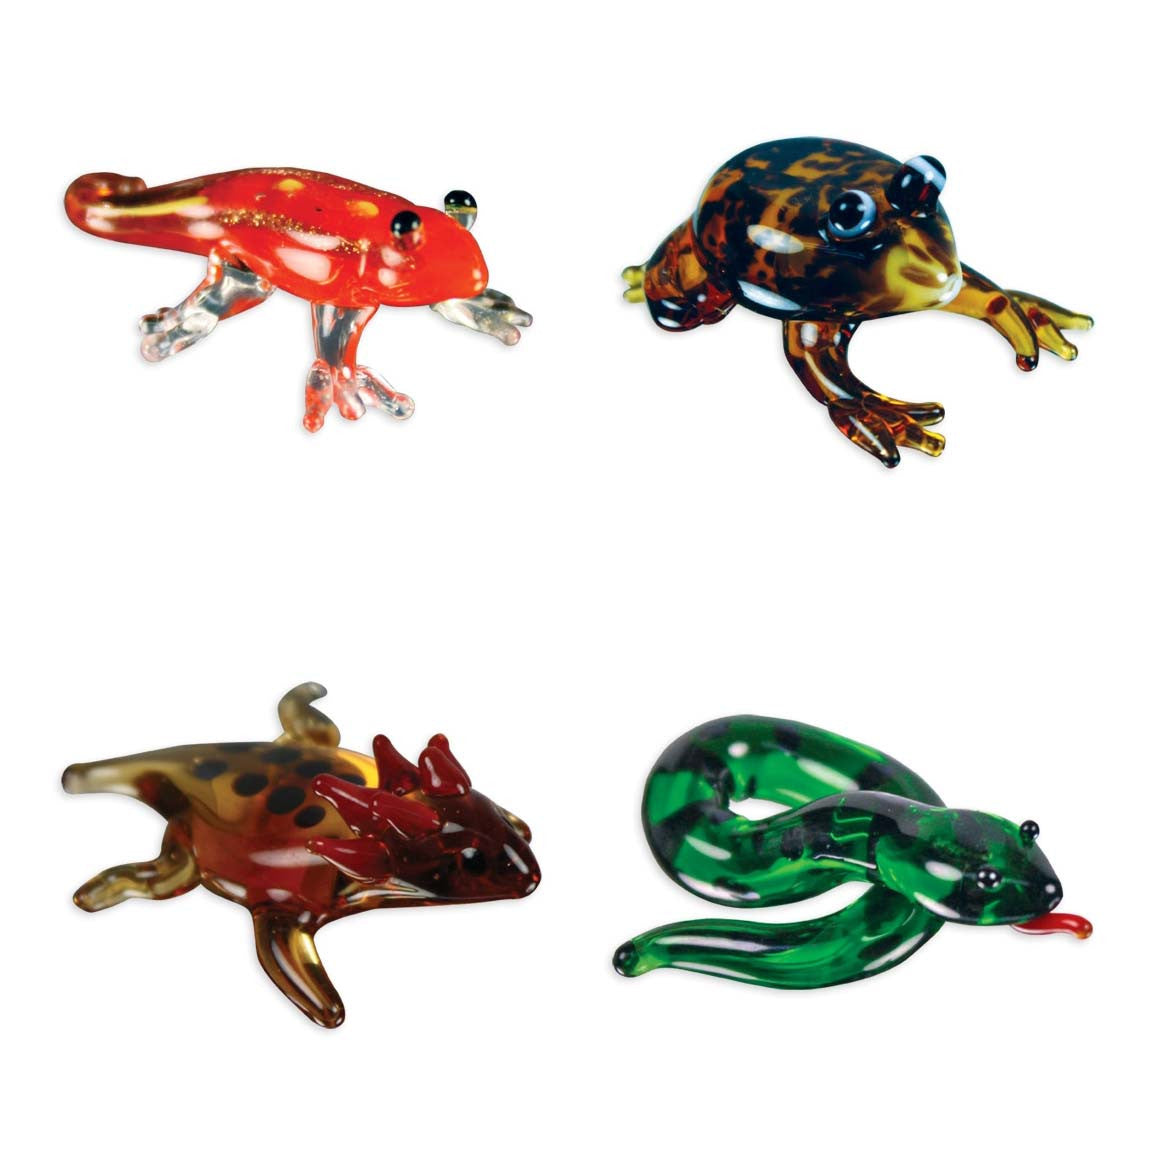 Looking Glass Torch - Reptiles - Gecko, Frog, Toad & Anaconda (4-Pack) - Off The Wall Toys and Gifts